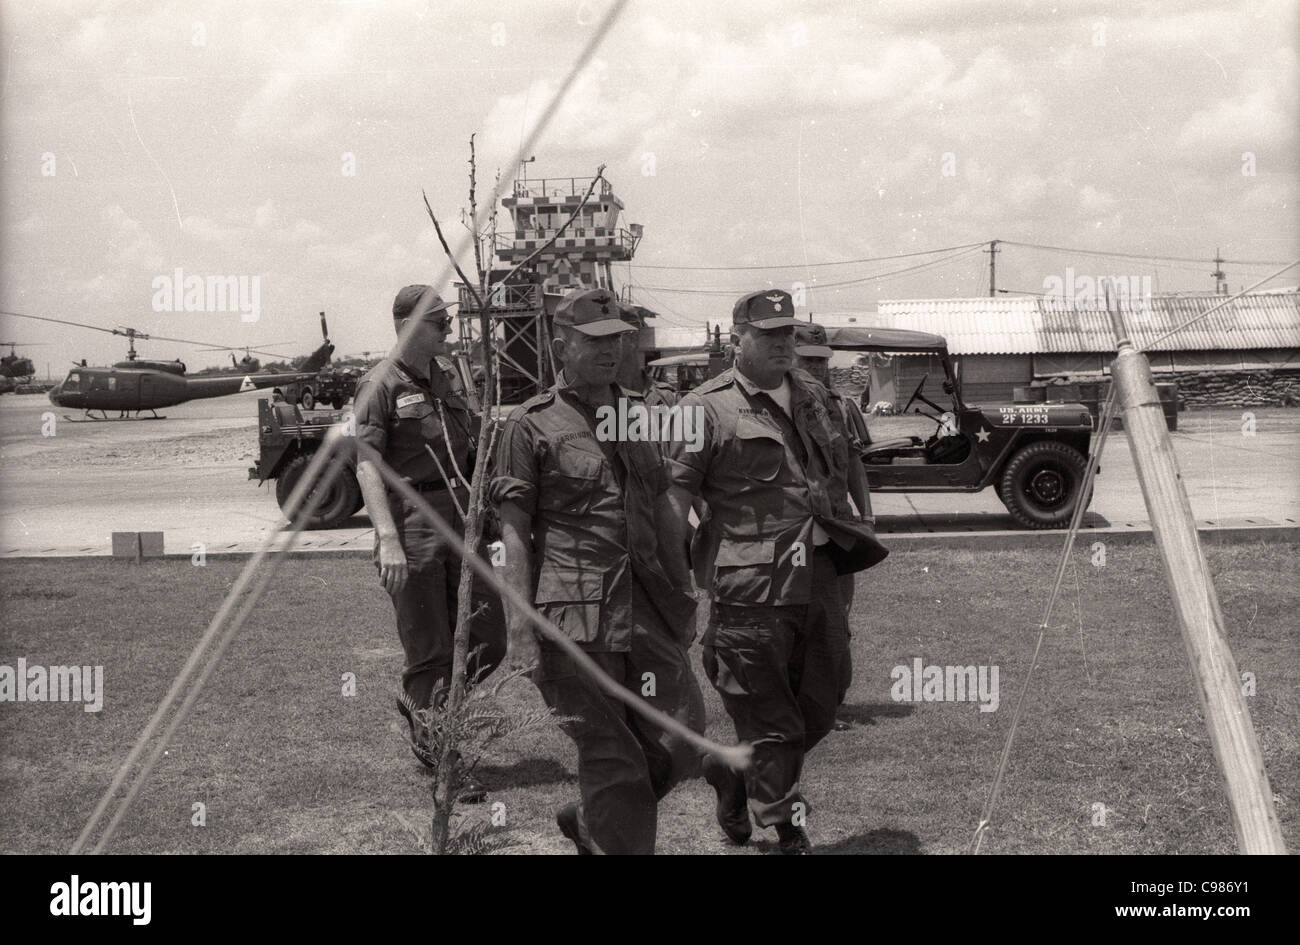 Vietnam War helicopter unit basecamp officers of 1st Aviation Brigade control tower huey - Stock Image